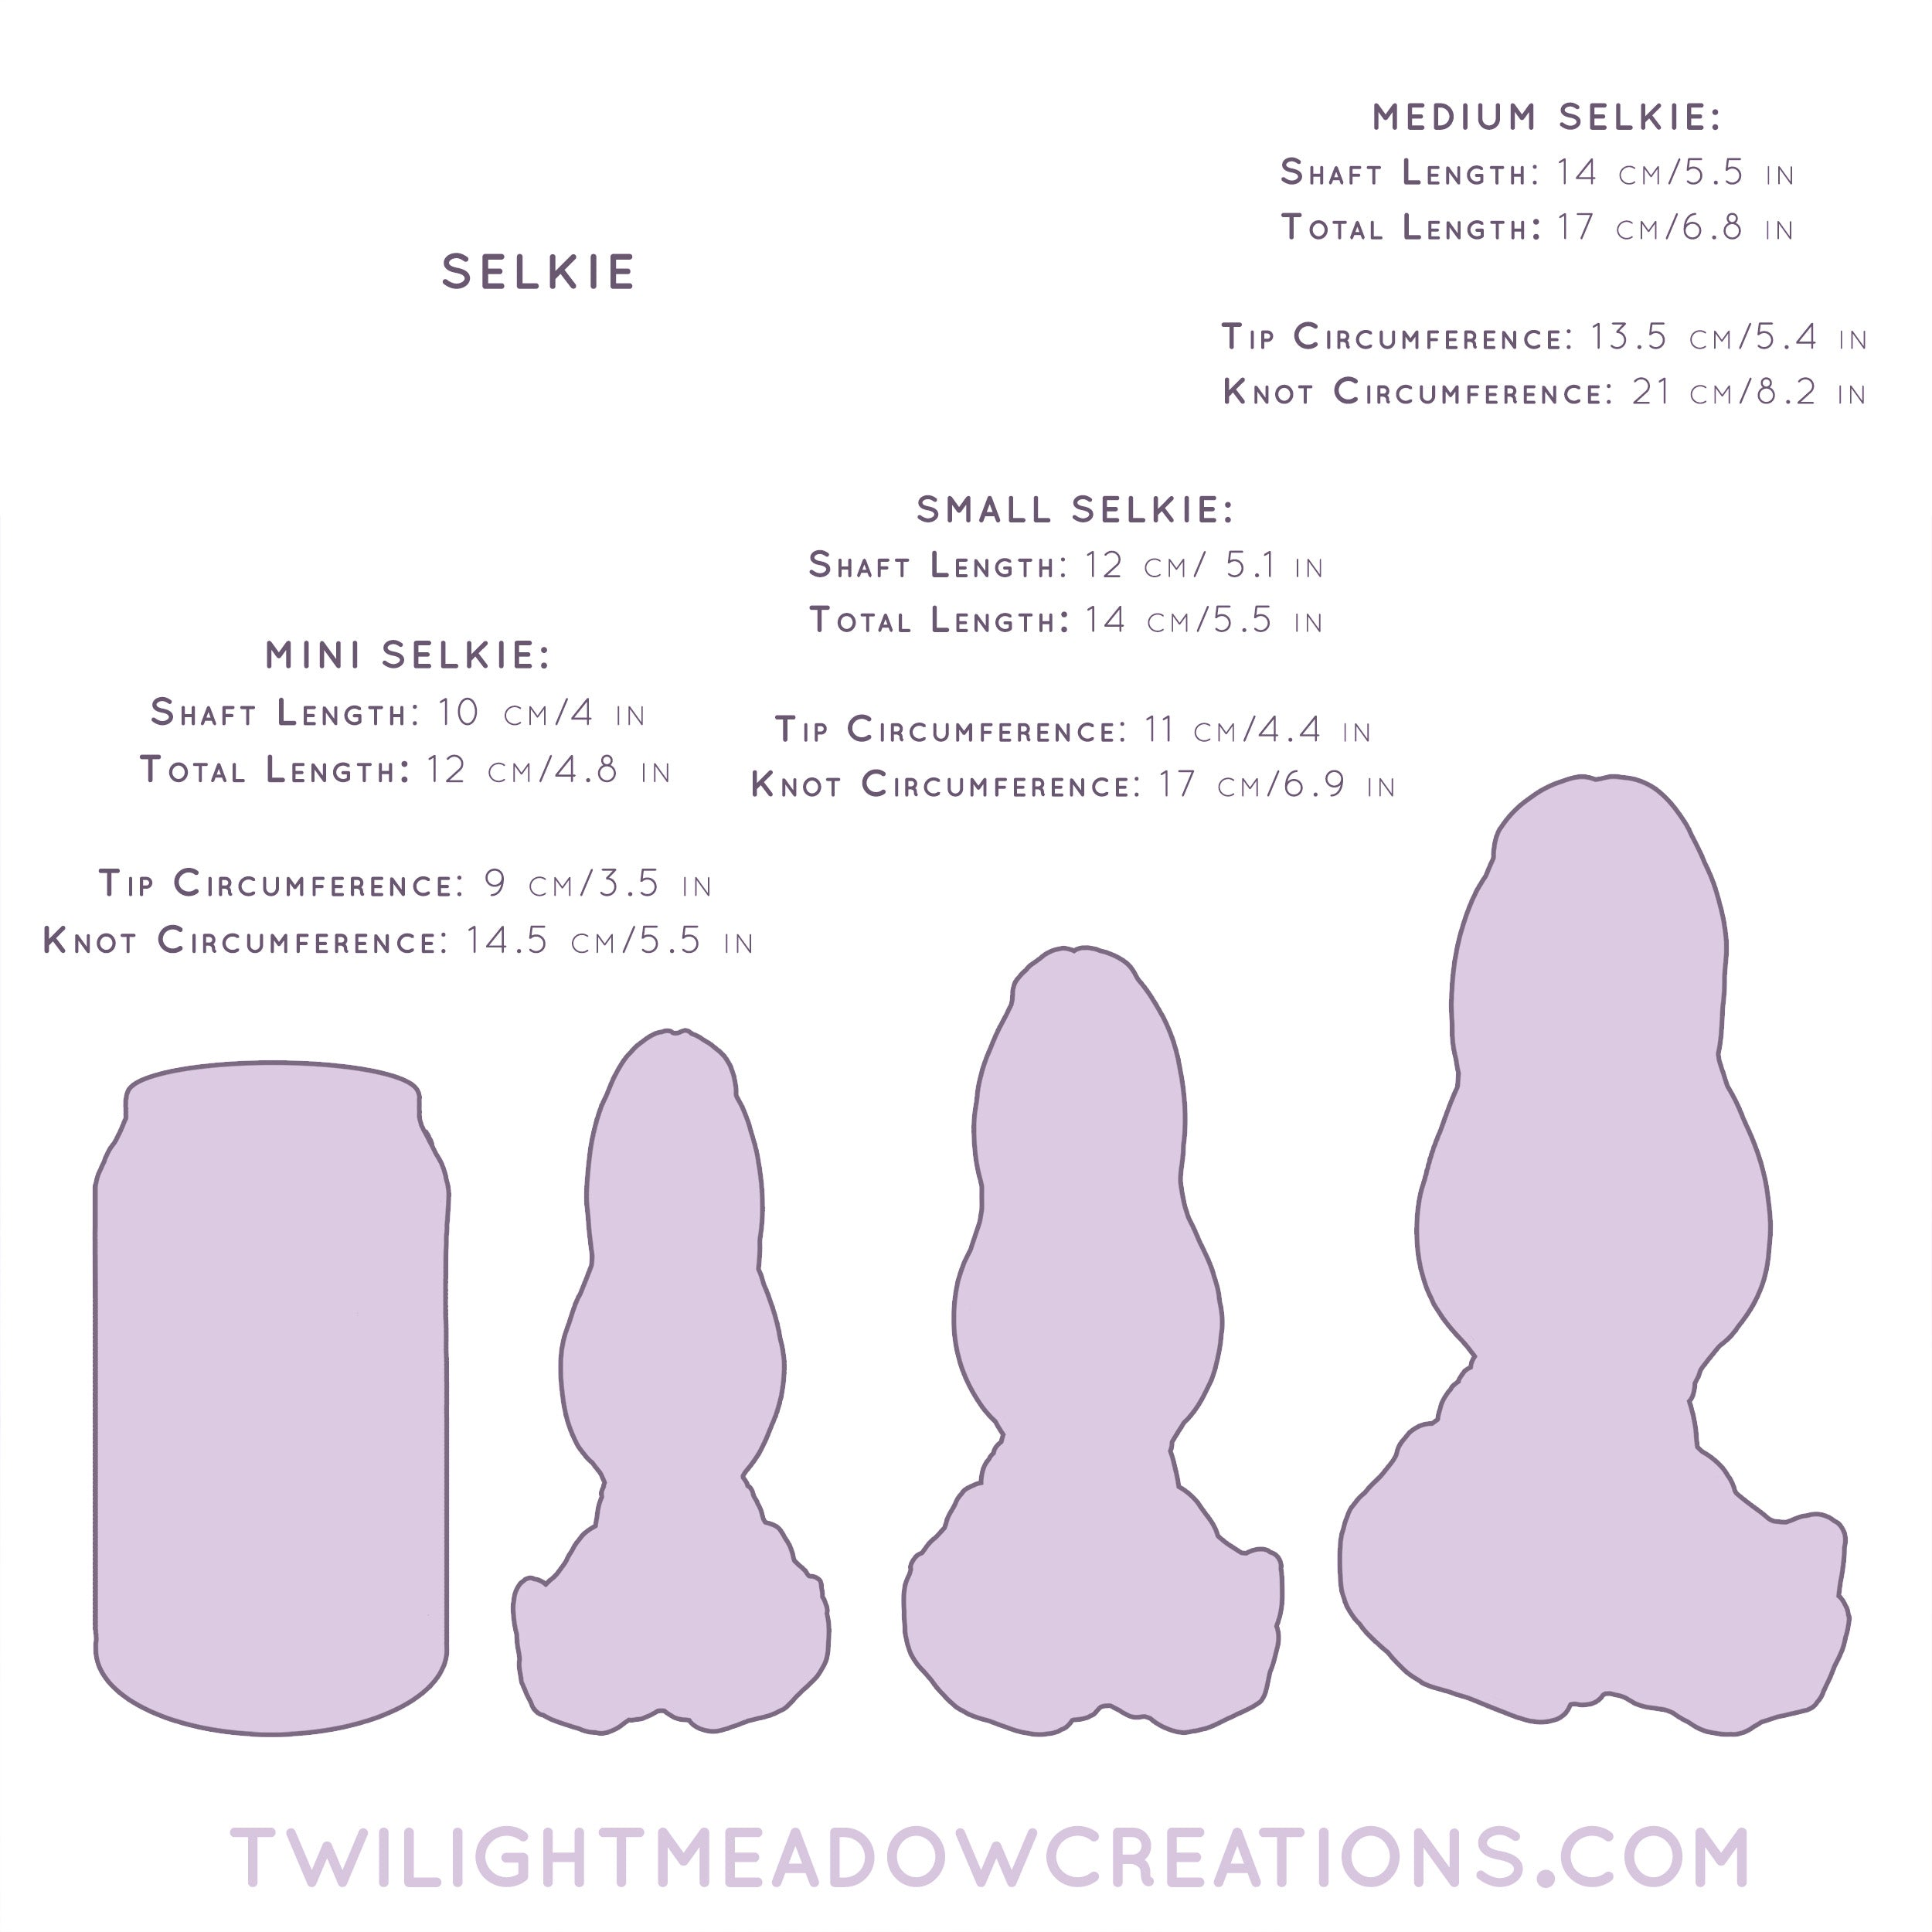 Medium Selkie (Firmness: Medium)